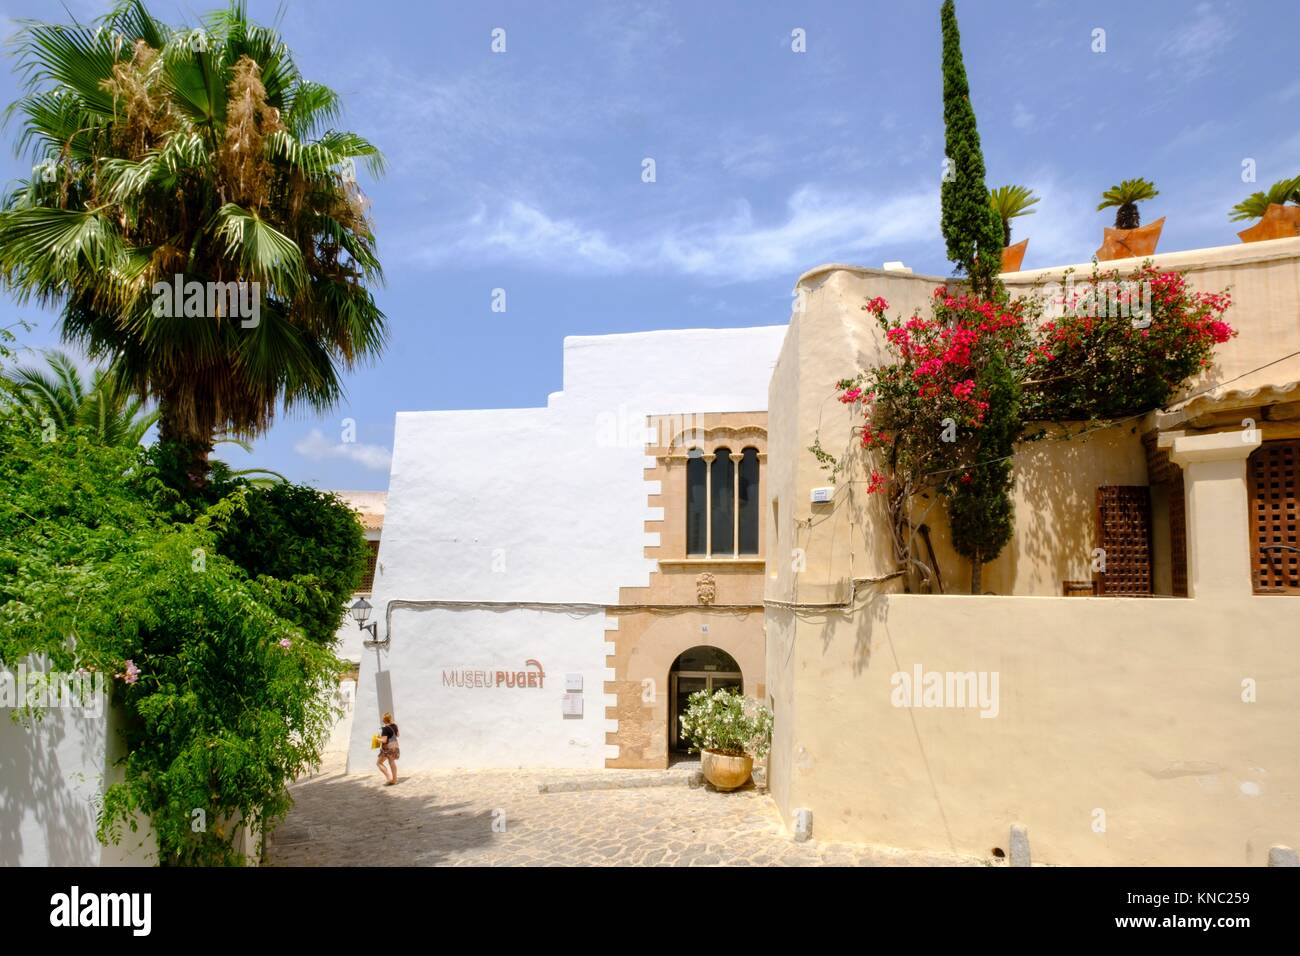 Puget Museum, Can Comasema, casa del siglo XV, Ibiza, Balearic Islands, Spain. Stock Photo